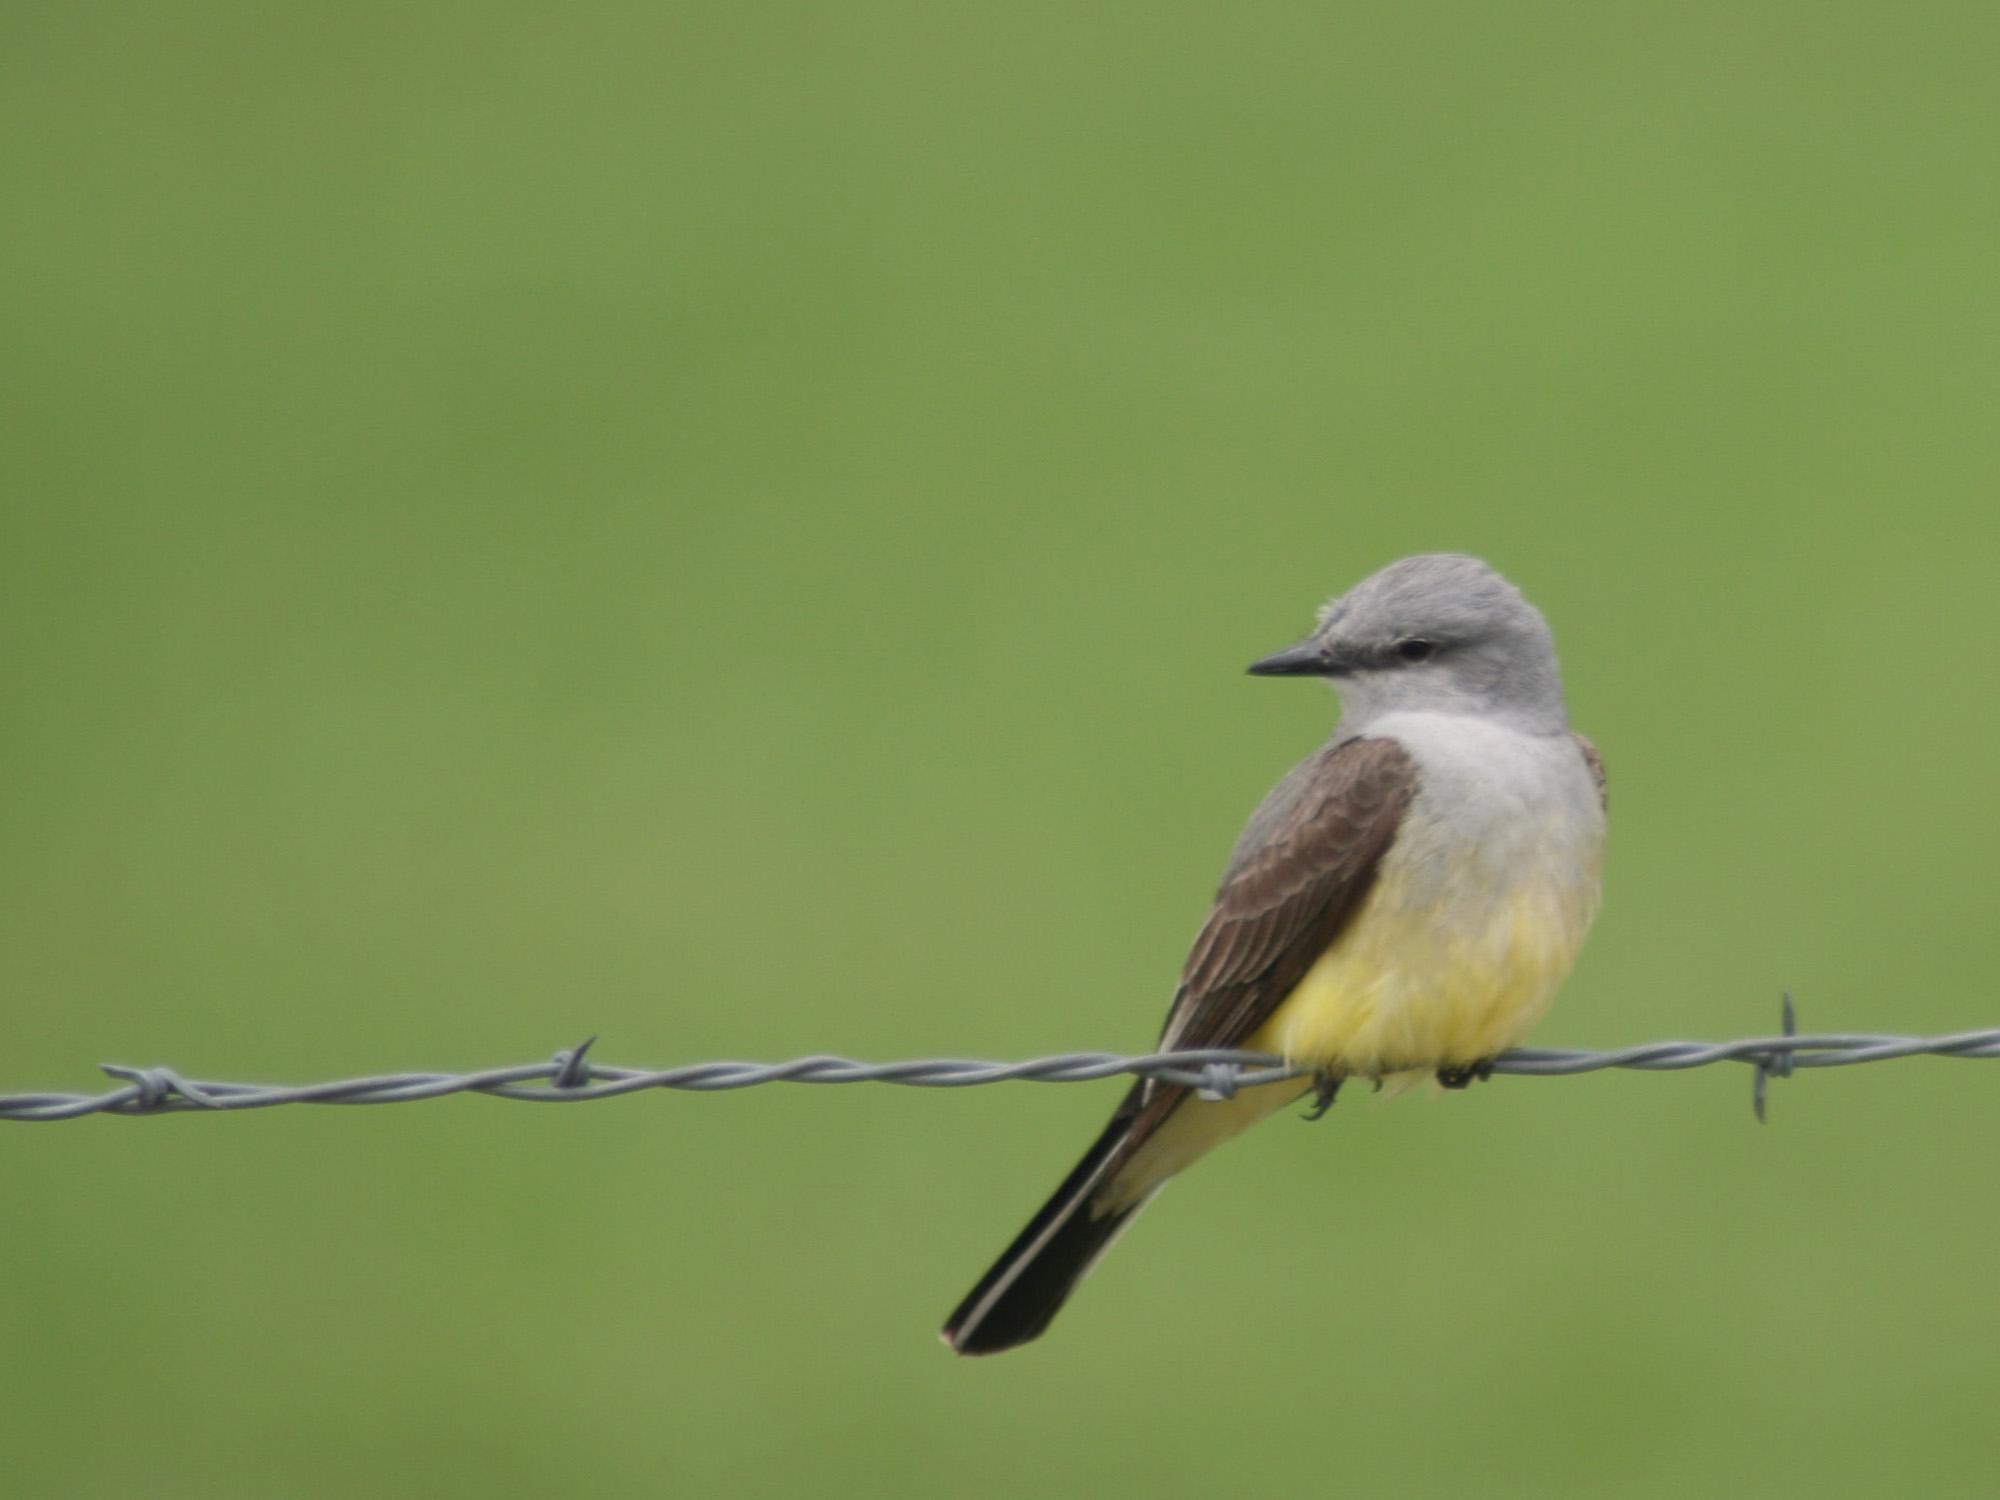 photo of little bird on a fence wire